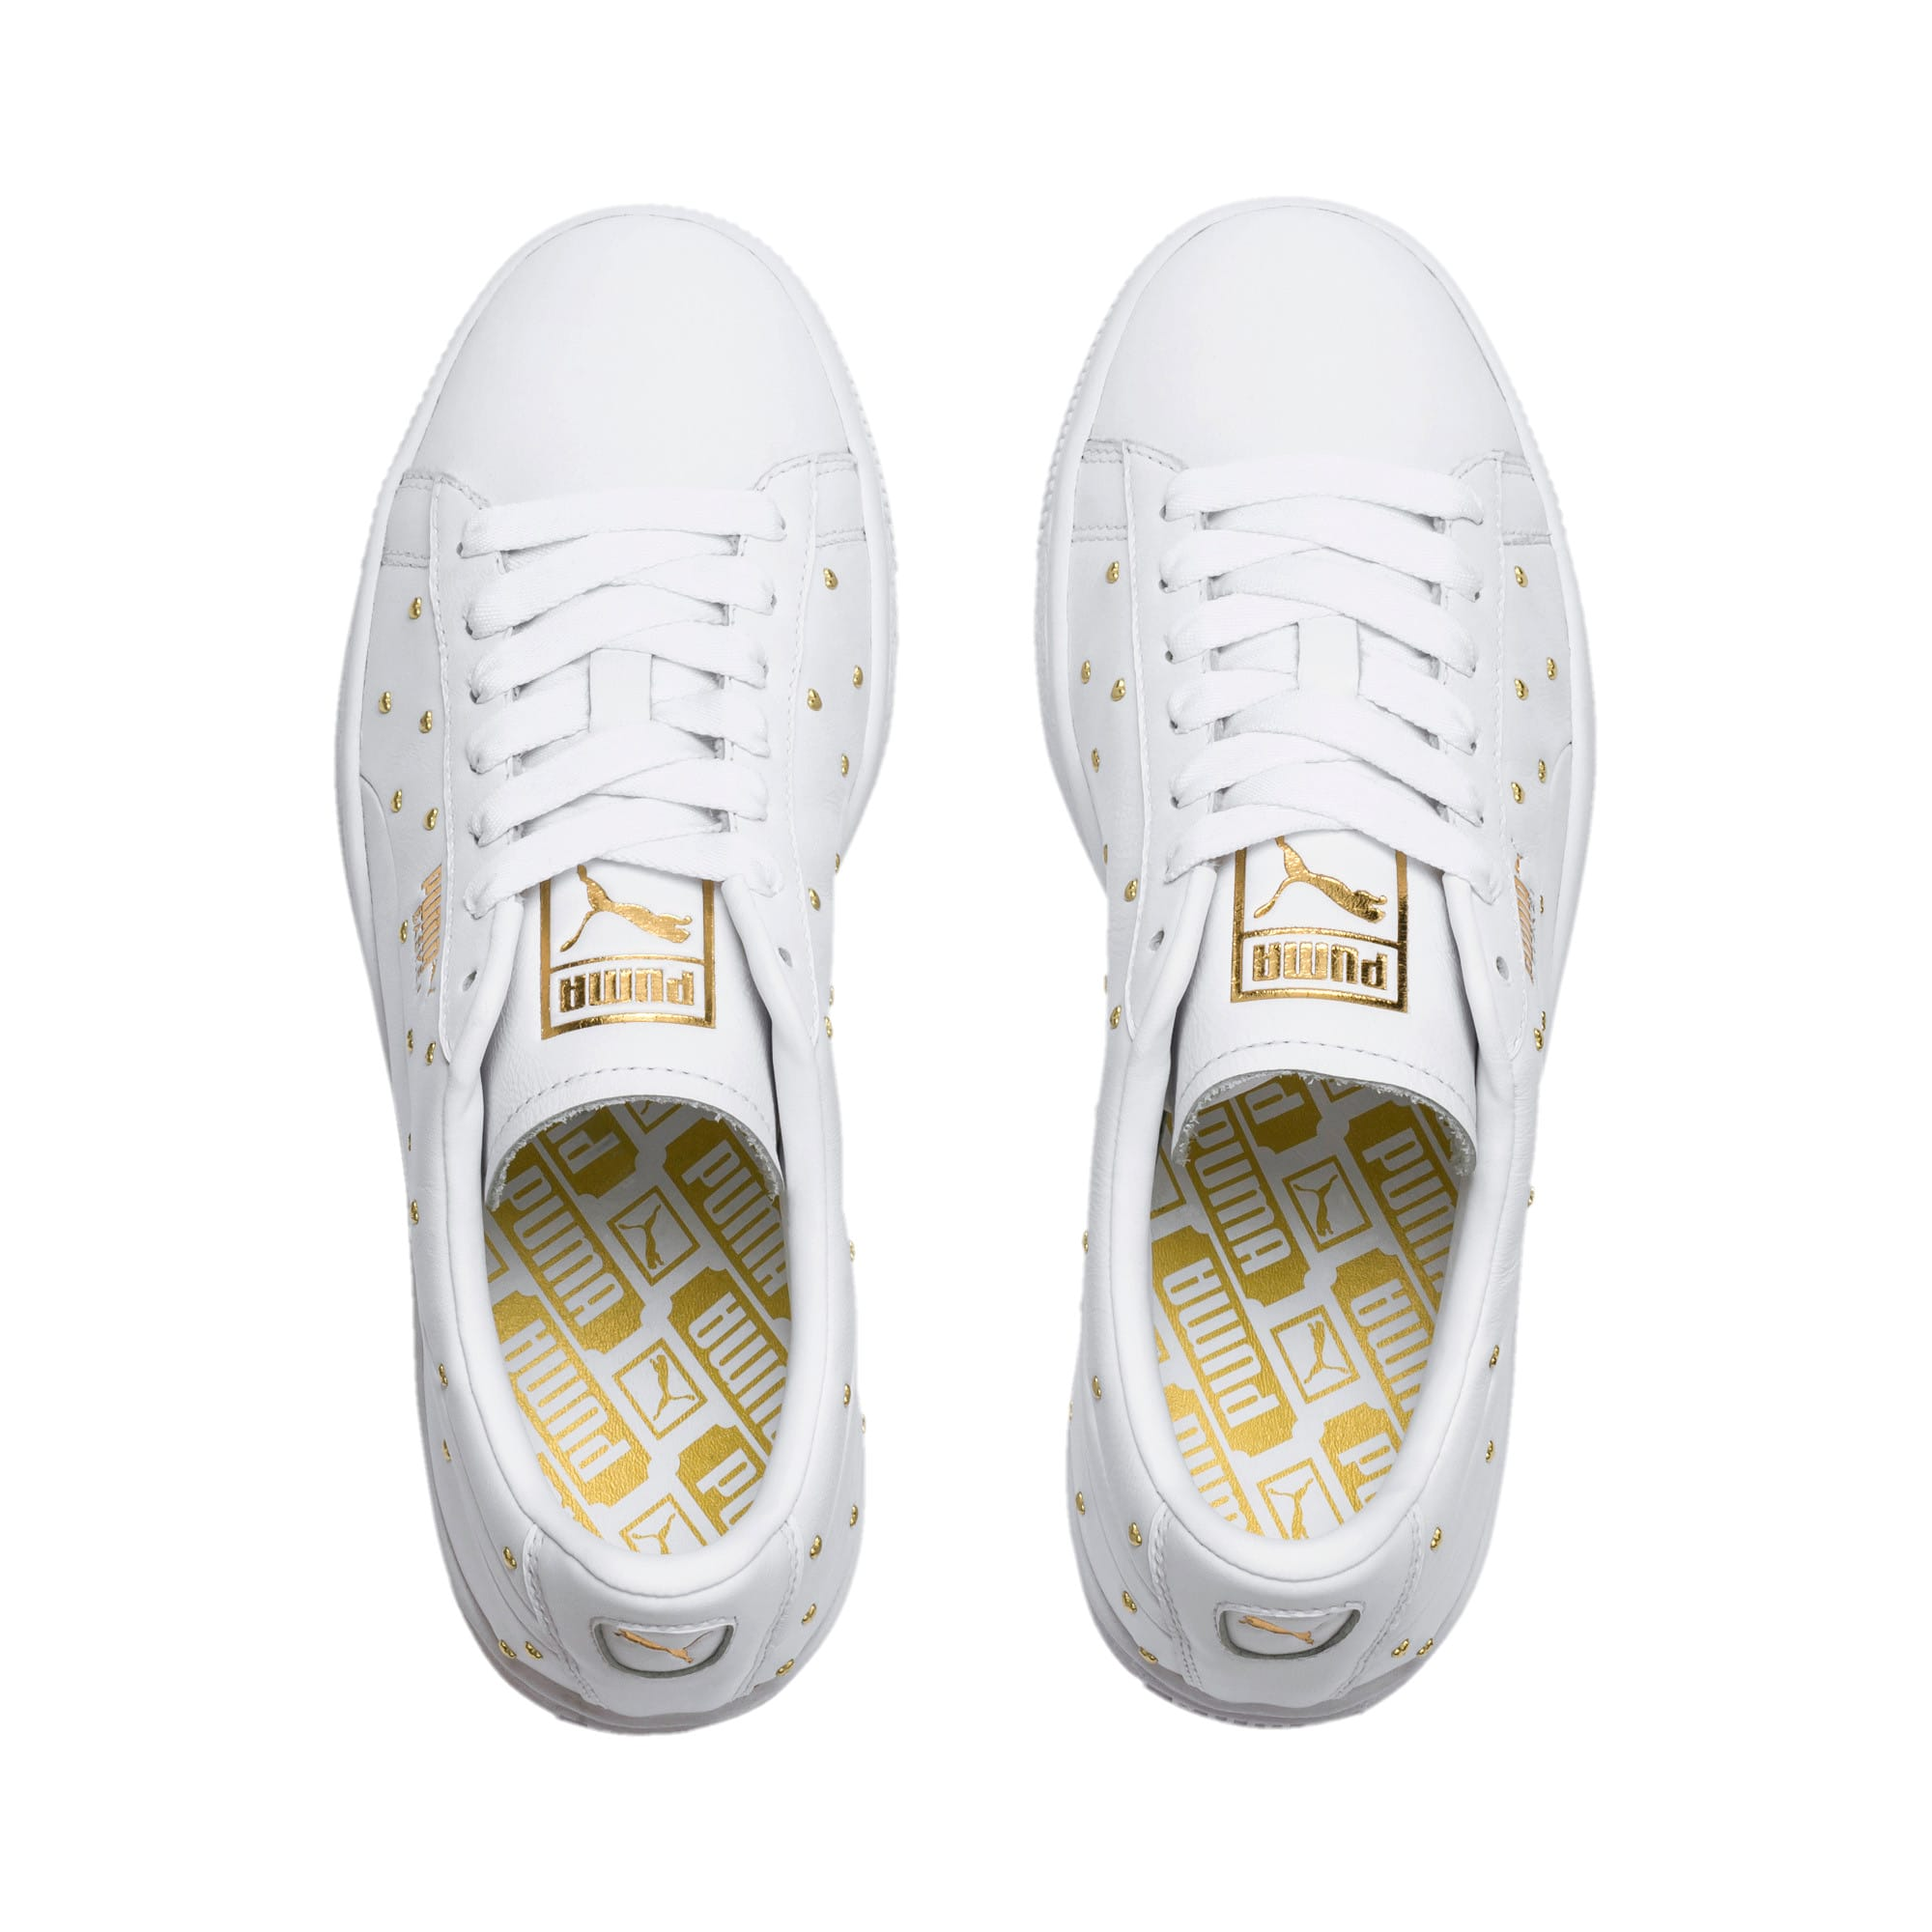 Thumbnail 7 of Basket Studs Women's Trainers, Puma White-Puma Team Gold, medium